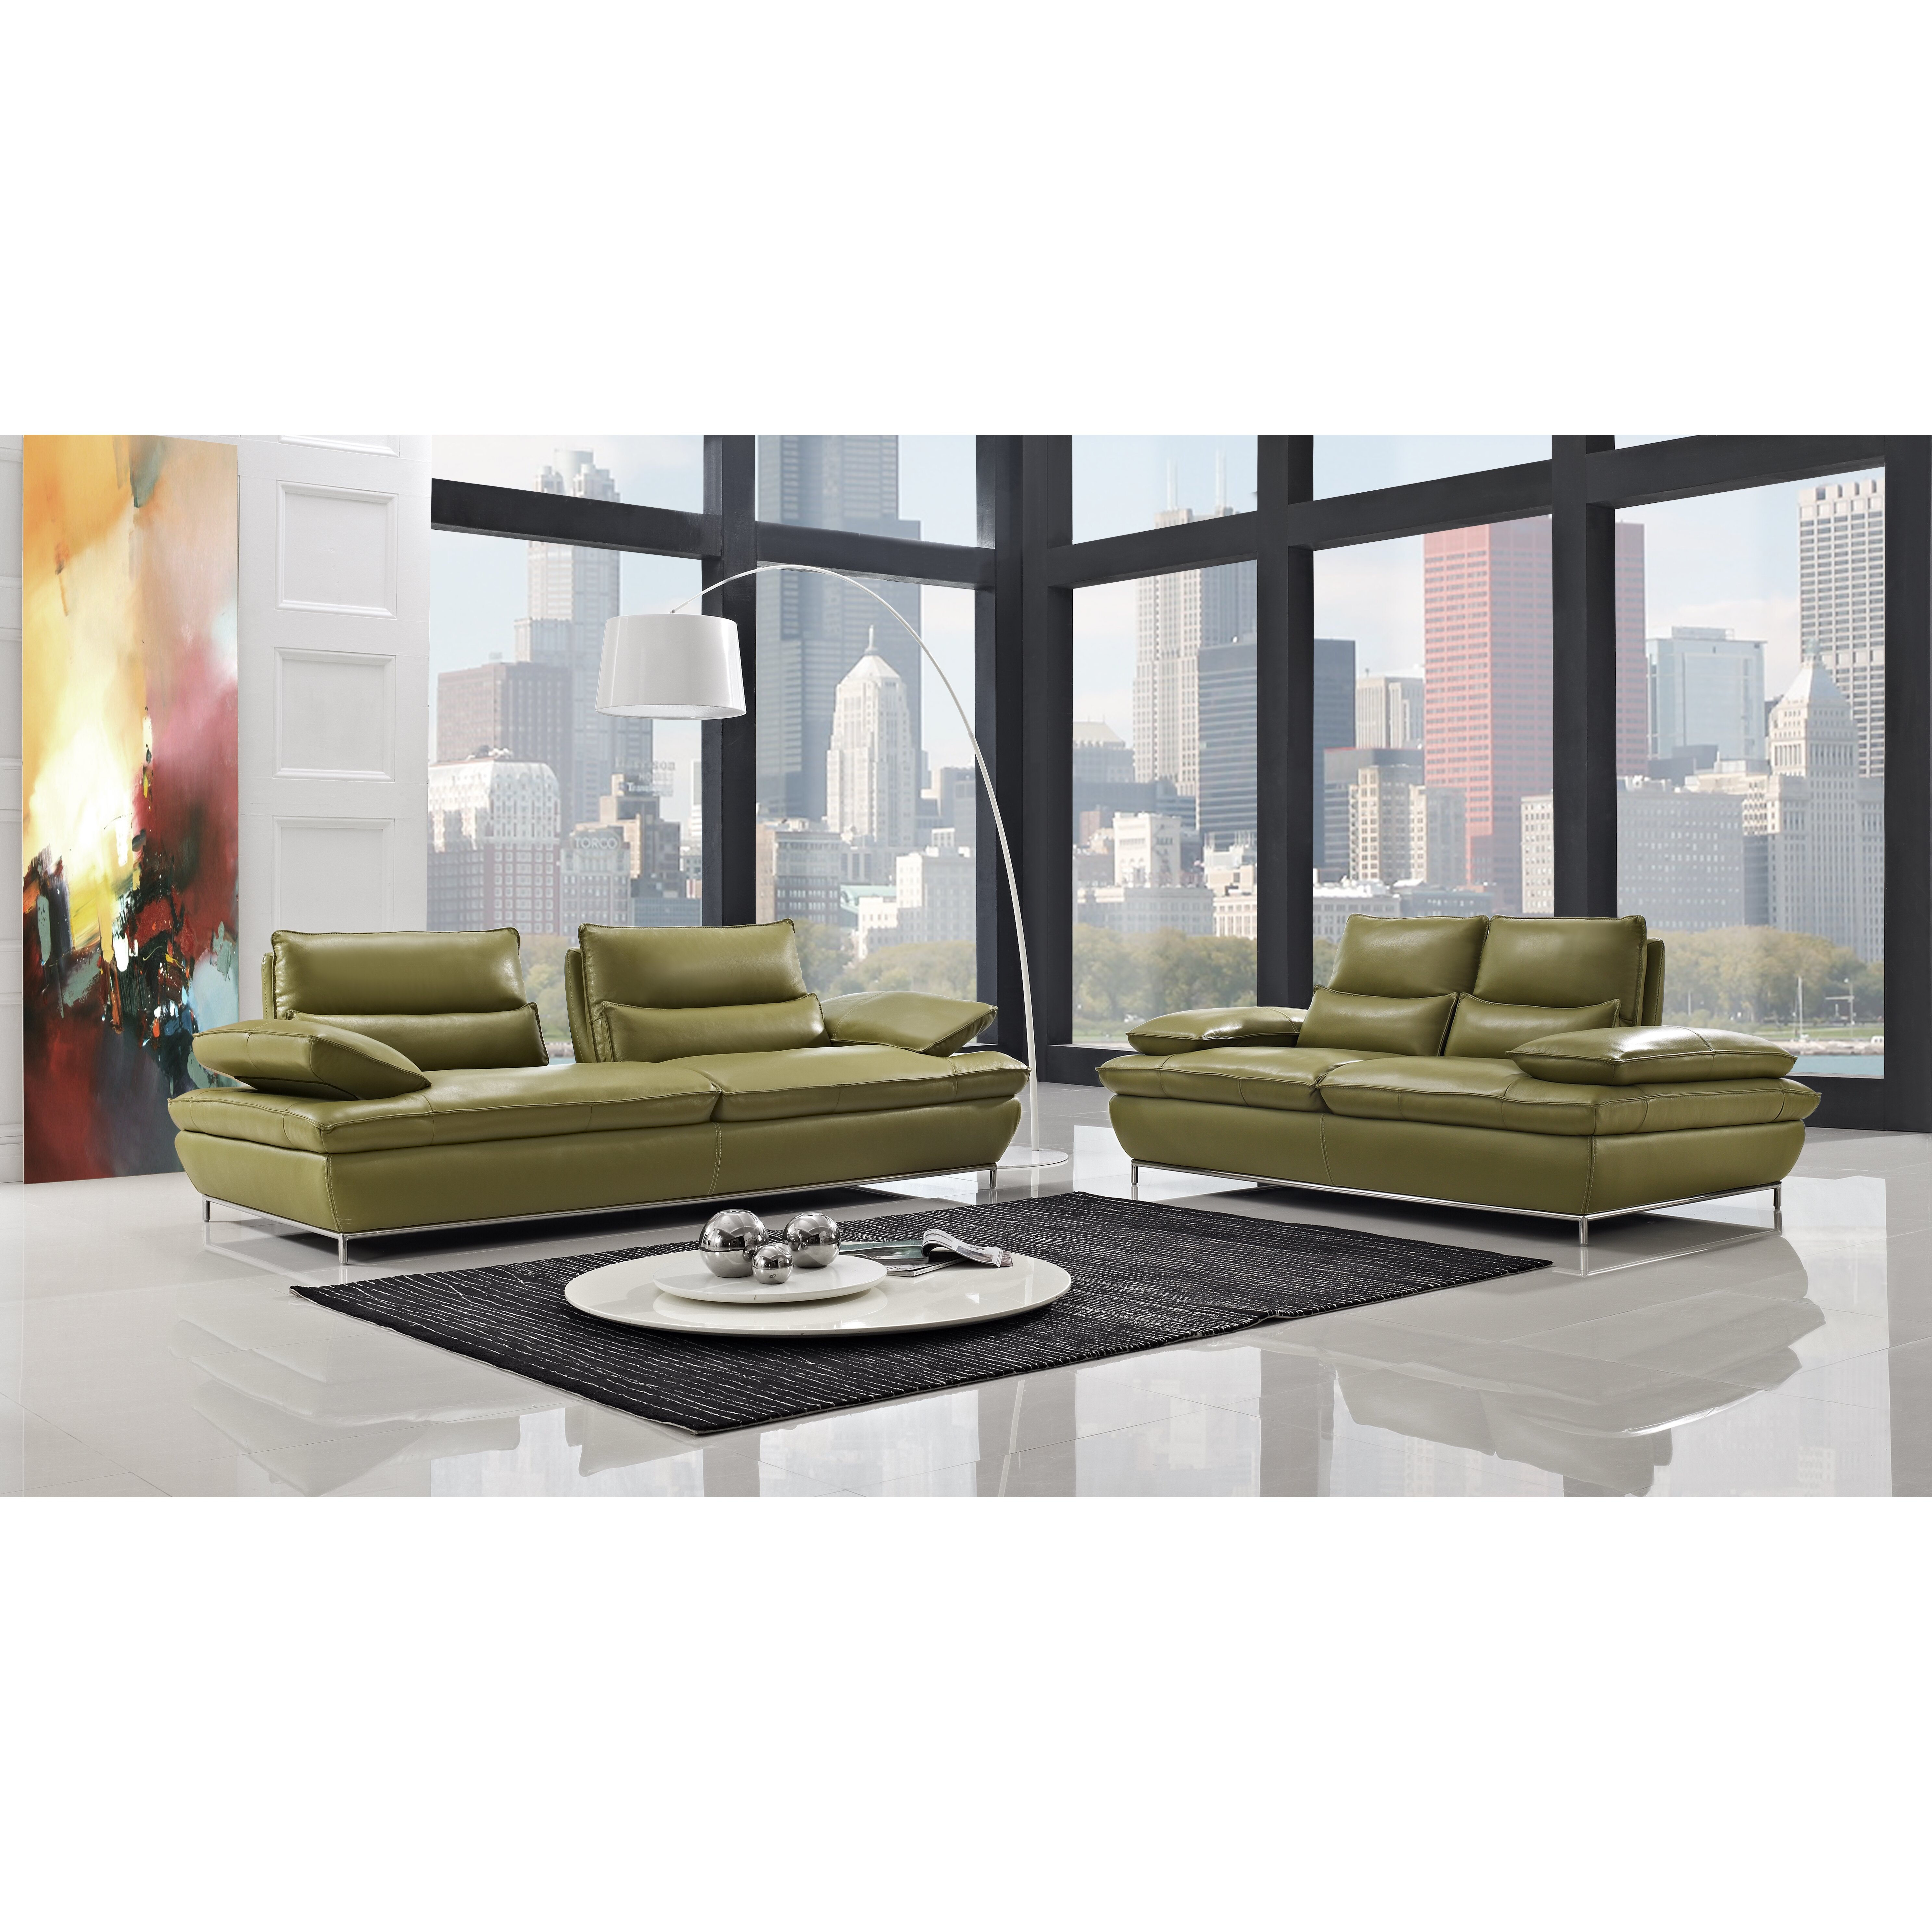 Living Room Collection Furniture Creative Furniture Naomi Living Room Collection Reviews Wayfair